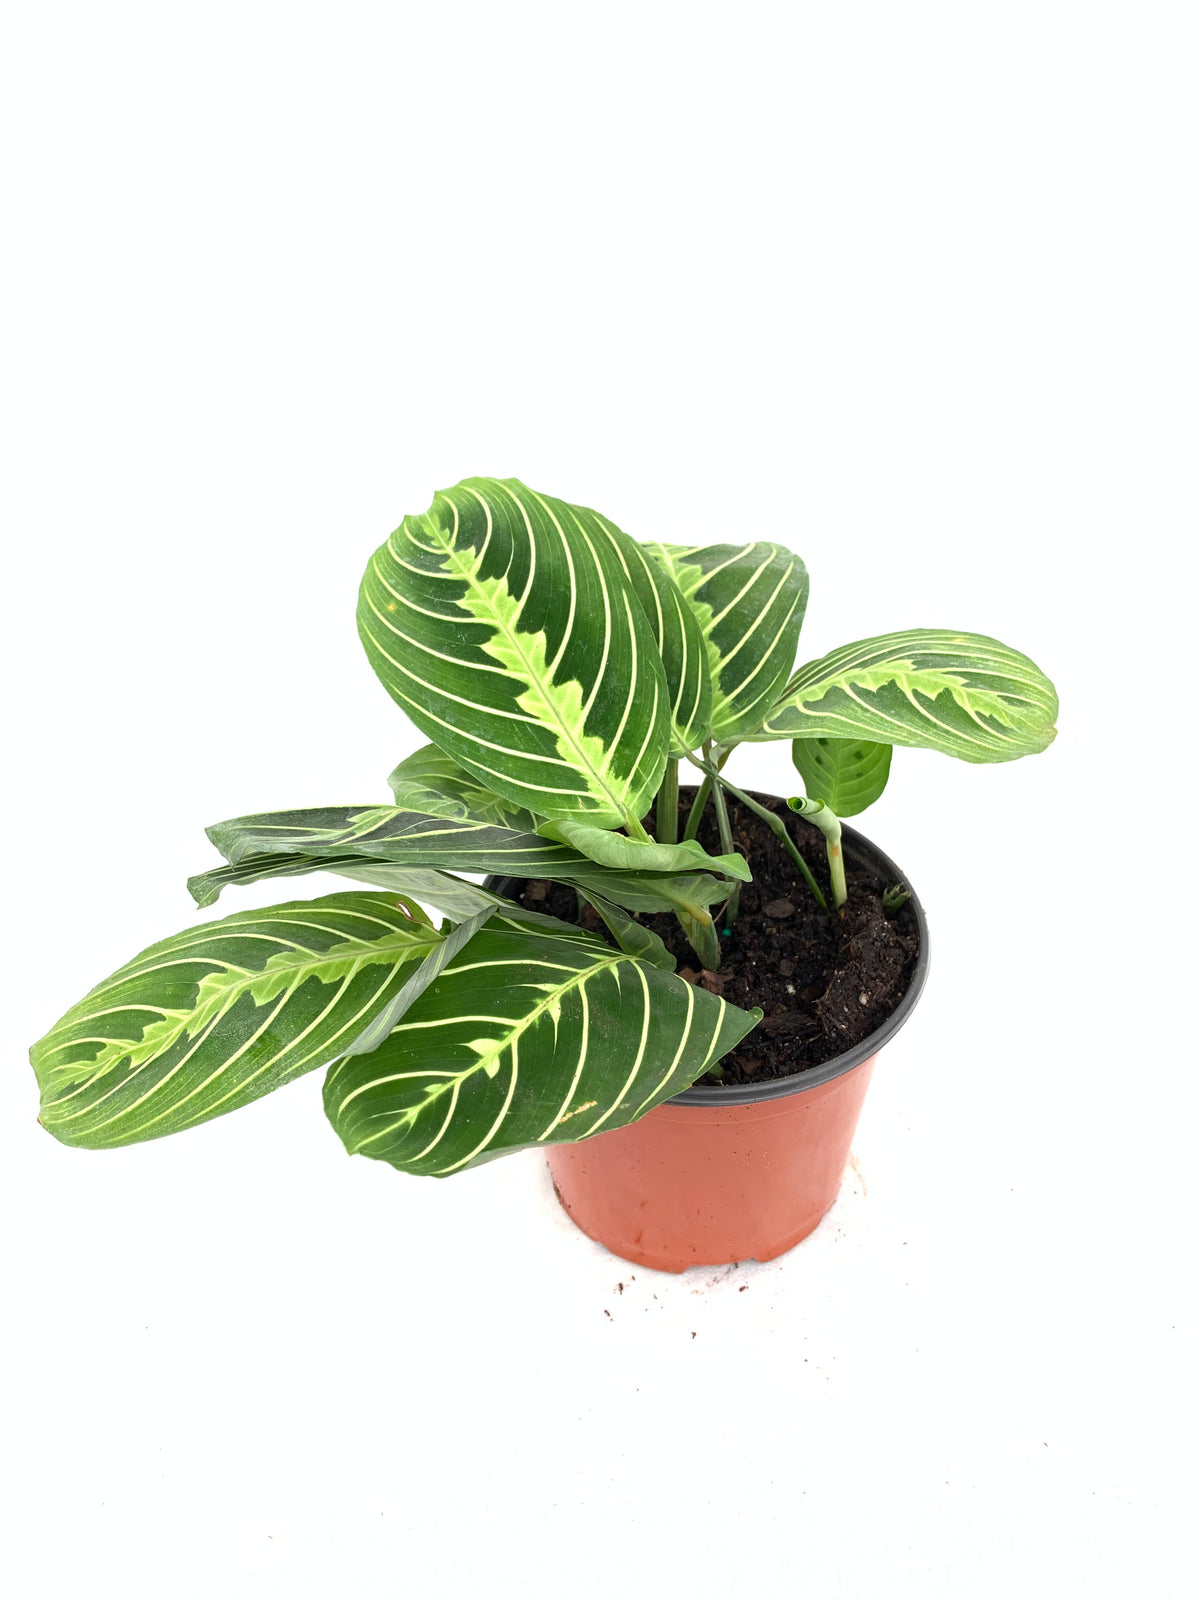 Maranta 'Lemon Lime', 6-inch